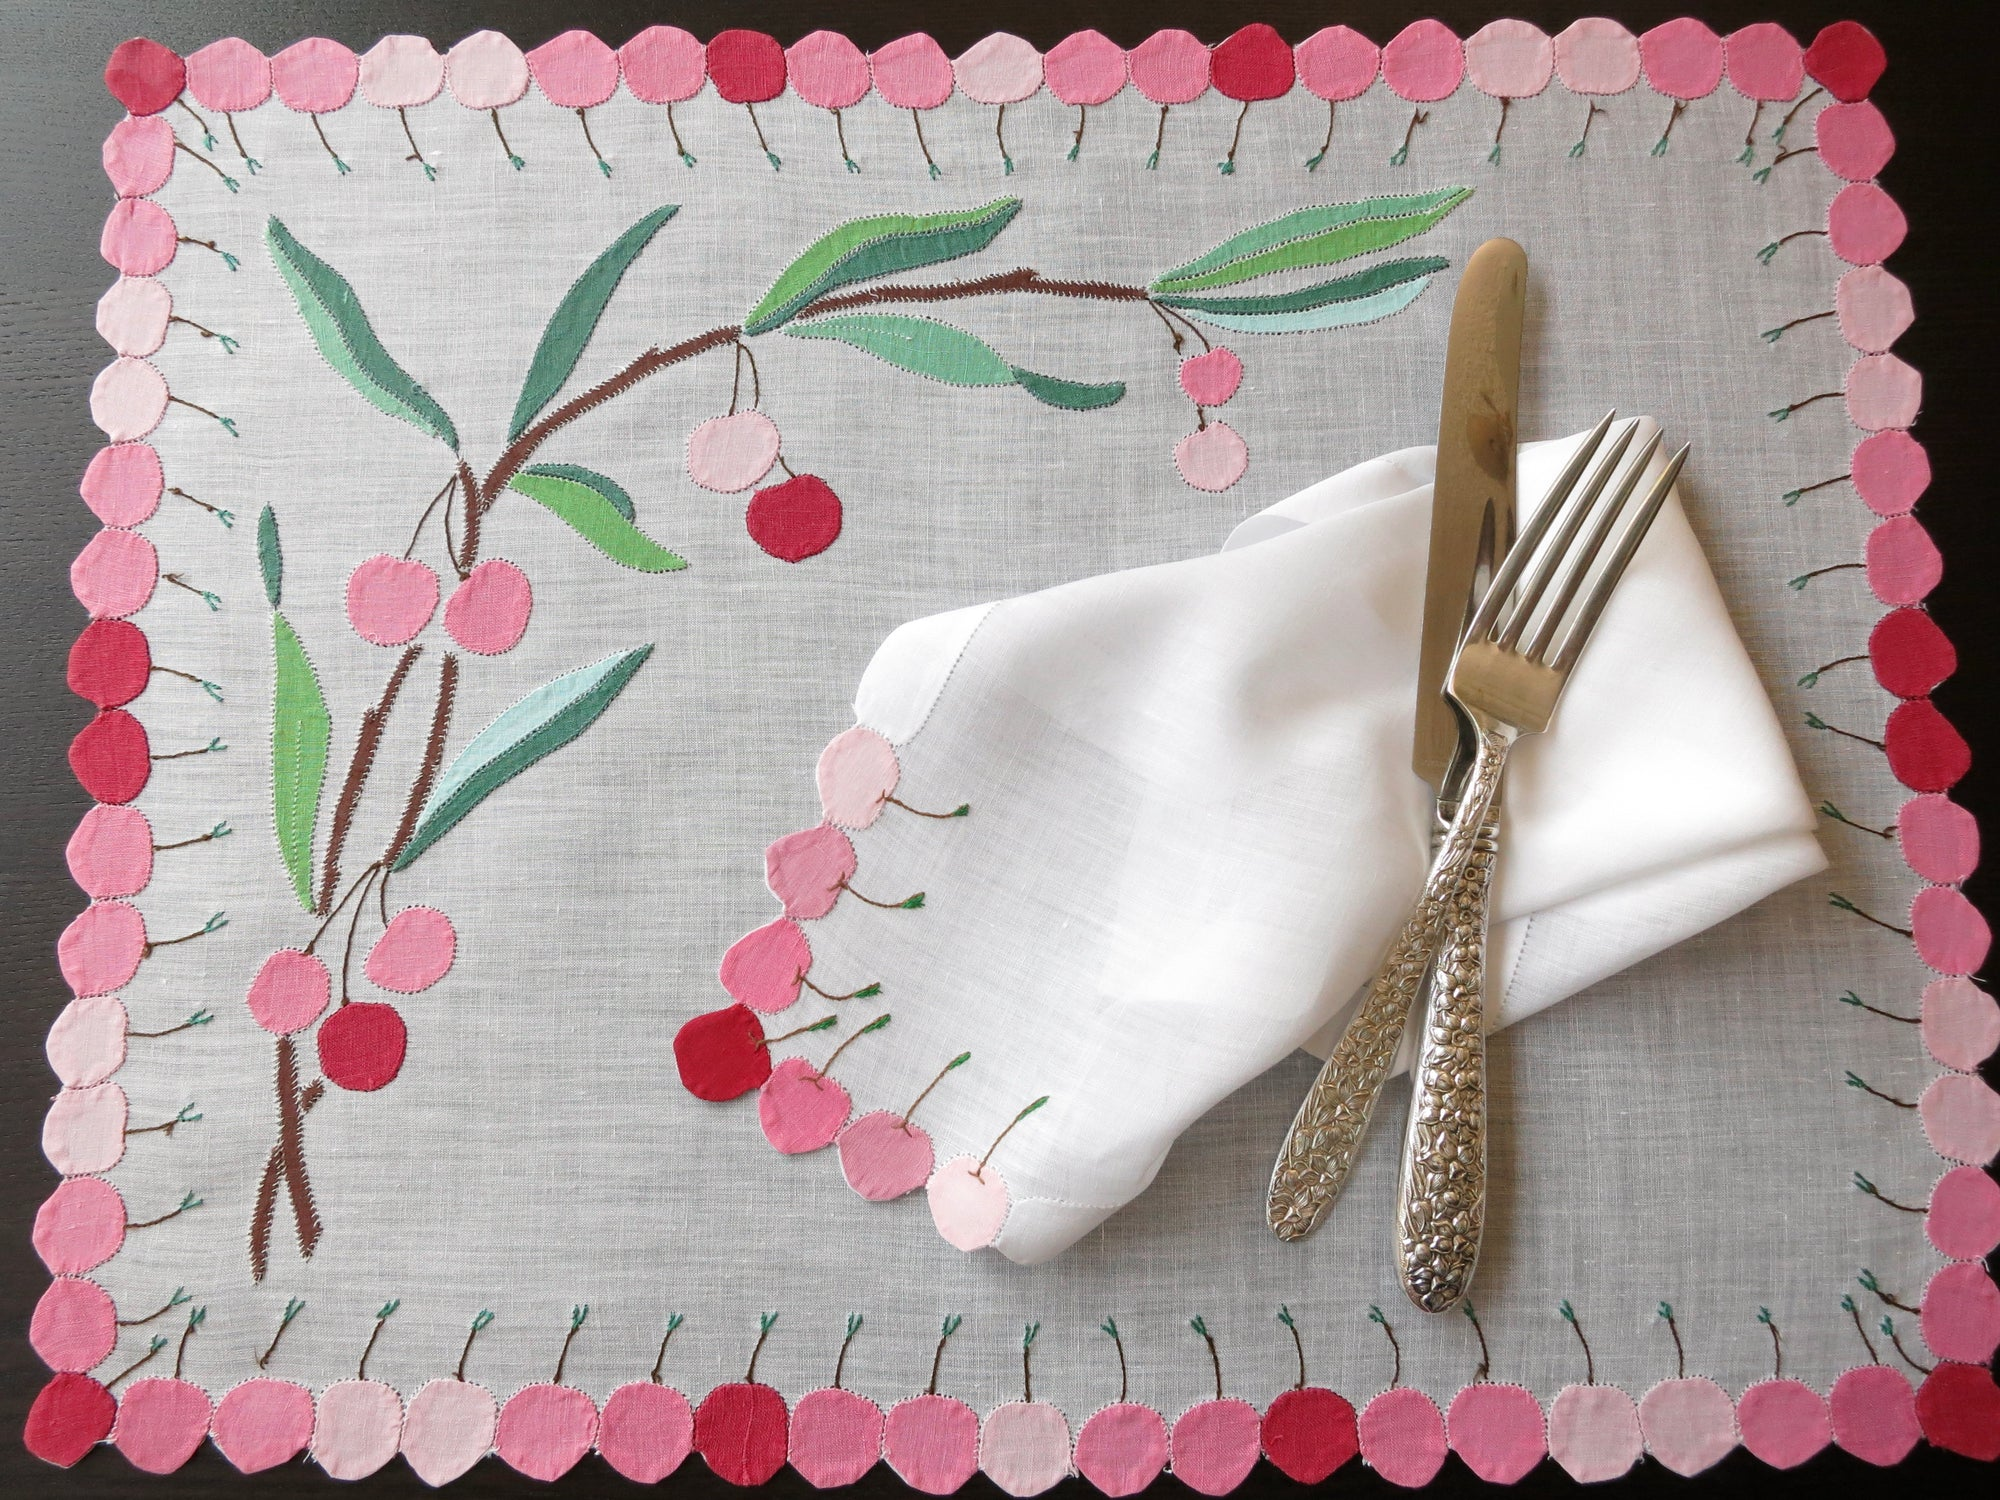 Cherries in Appliqué French Vintage Linen Placemat Setting for 8